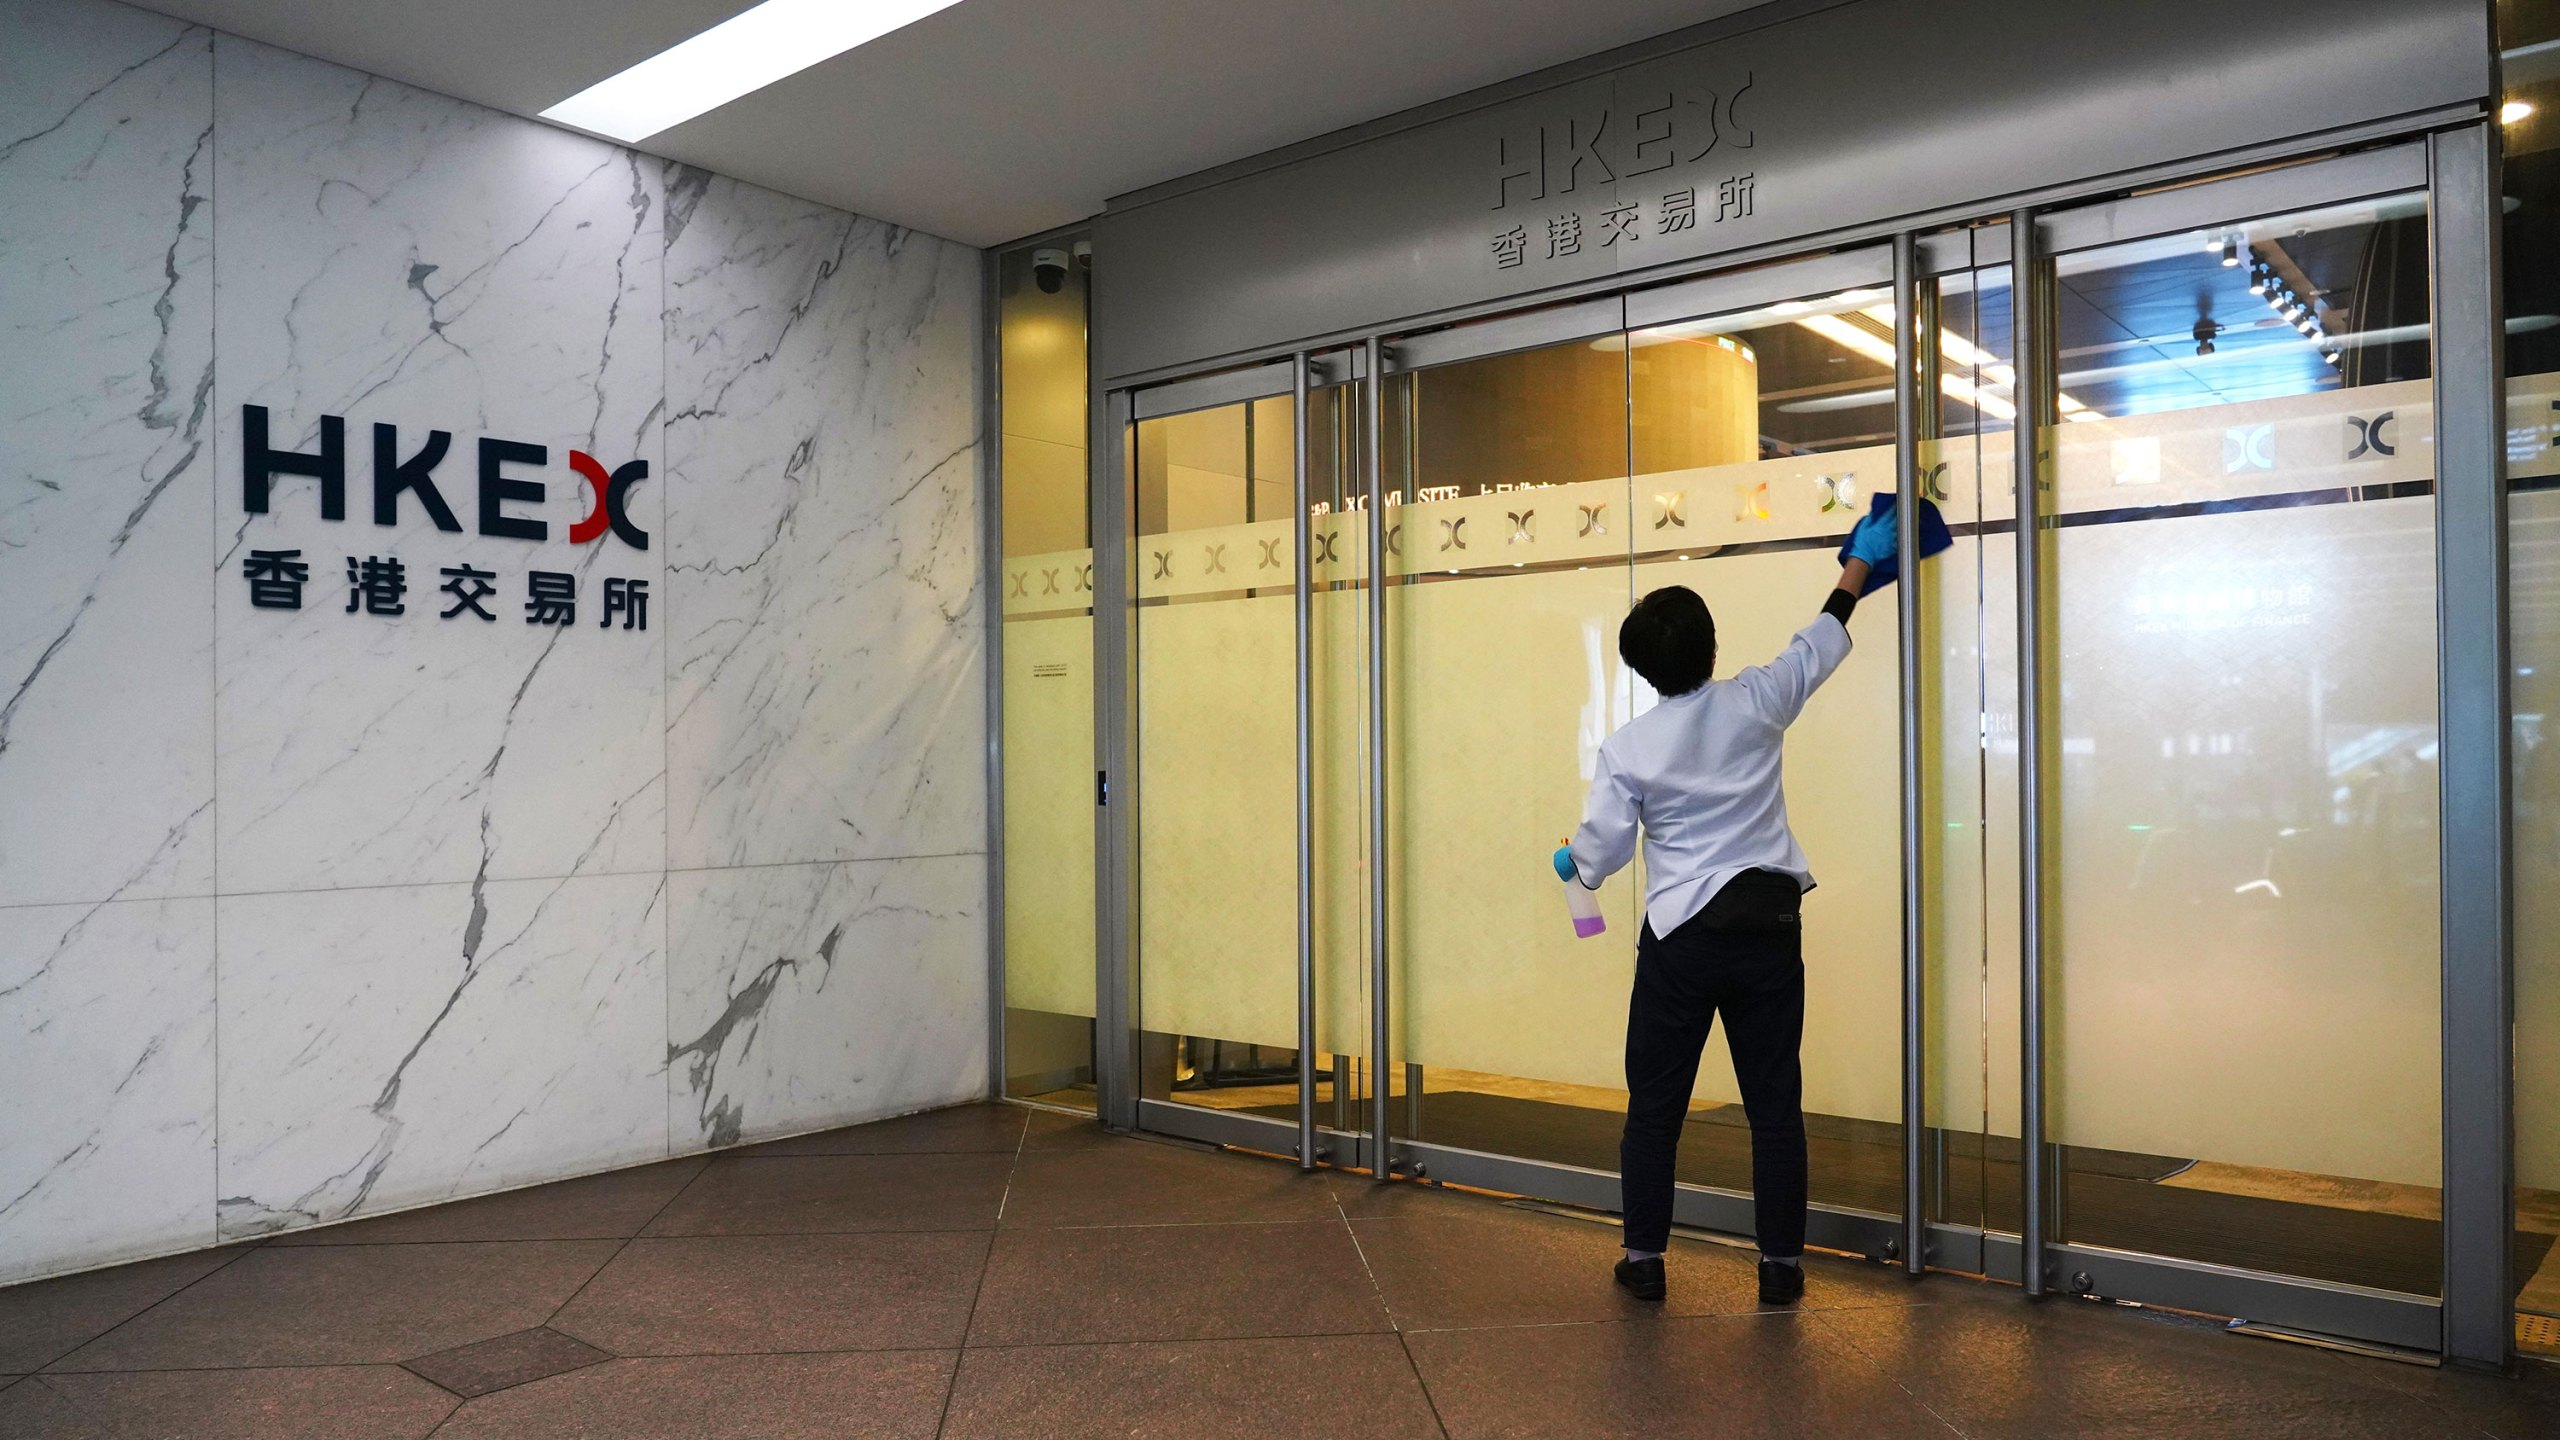 A cleaner disinfects a door of HKEX (Hong Kong Stock Exchange) Connect Hall on March 27, 2020 in Hong Kong, China. (Zhang Wei/China News Service via Getty Images)